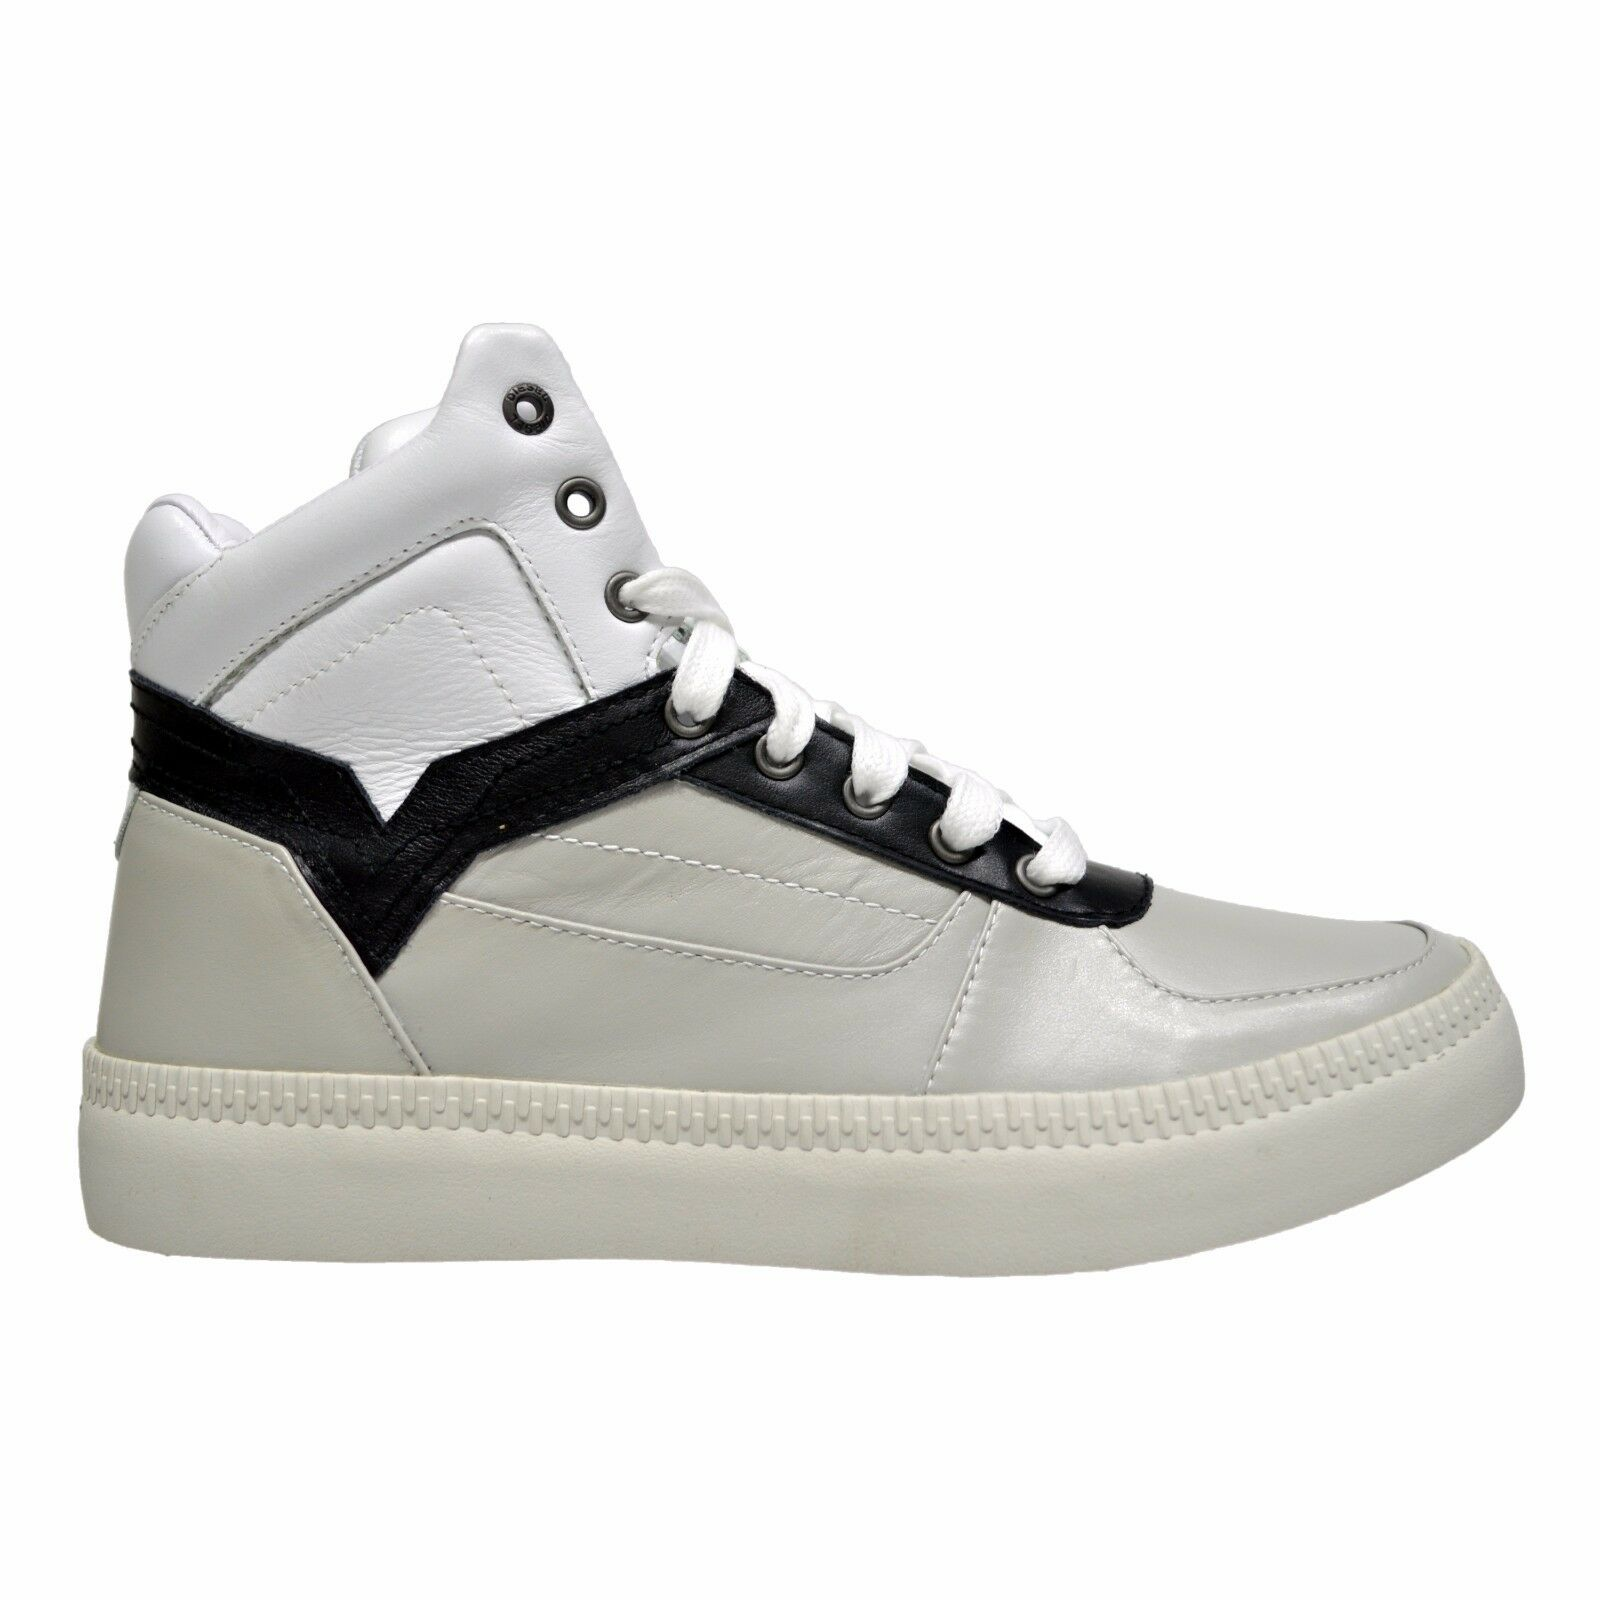 Diesel S-Spaark Mid Men's High Top Leather Fashion Sneakers Light Grey White